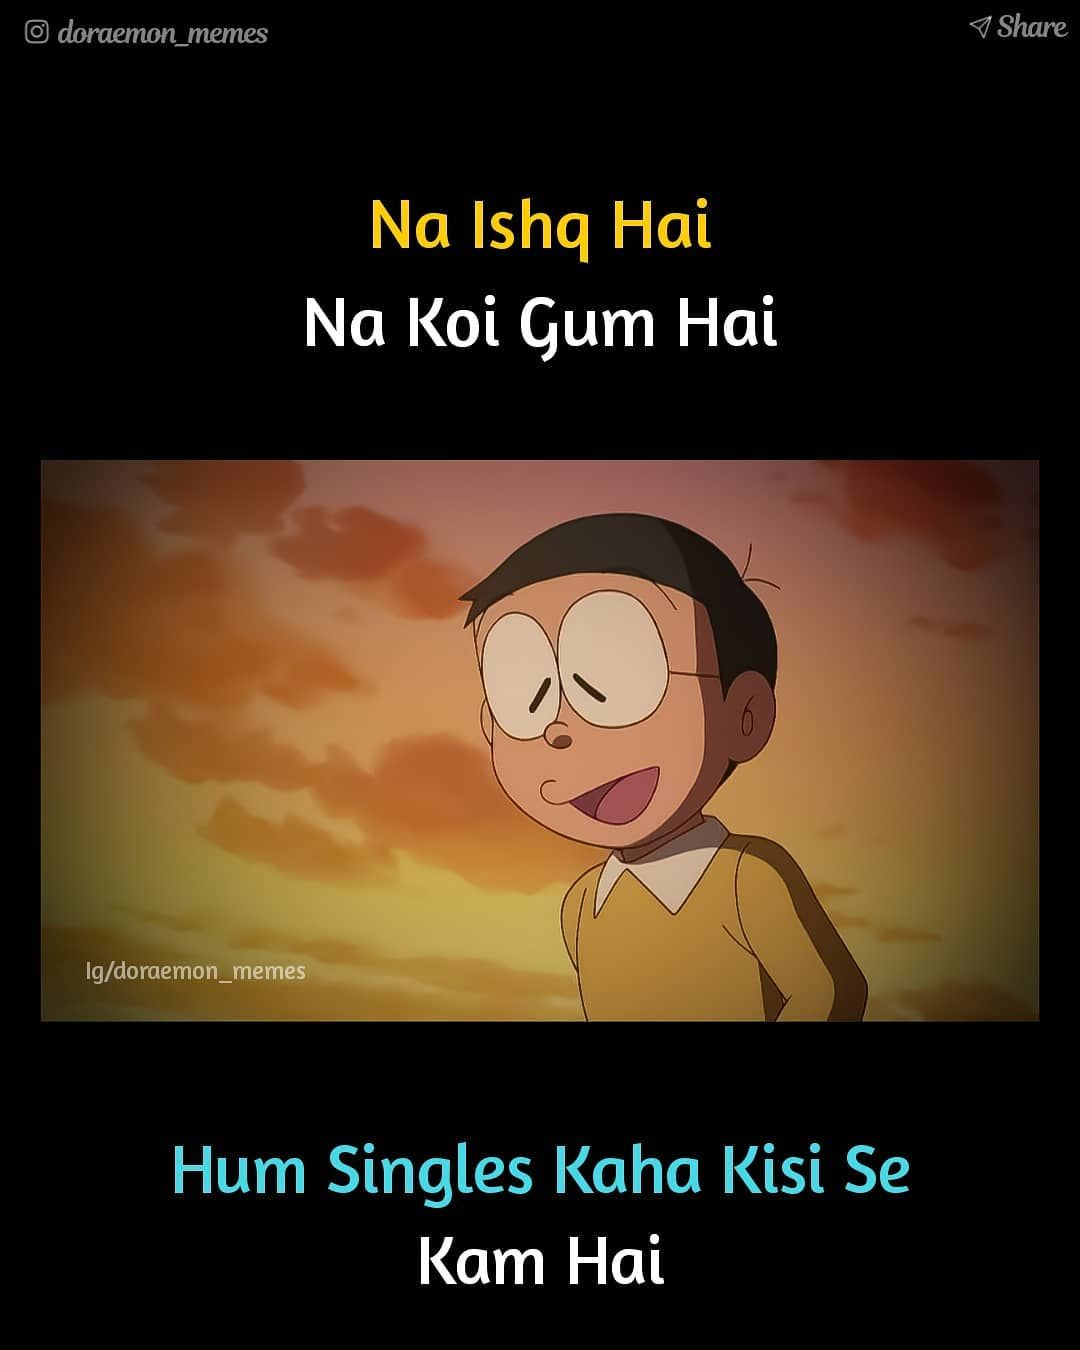 Hindi Memes Funny Jokes Funny Memes Funny Pictures Happy New Year Pictures Swag Quotes Funny Jokes